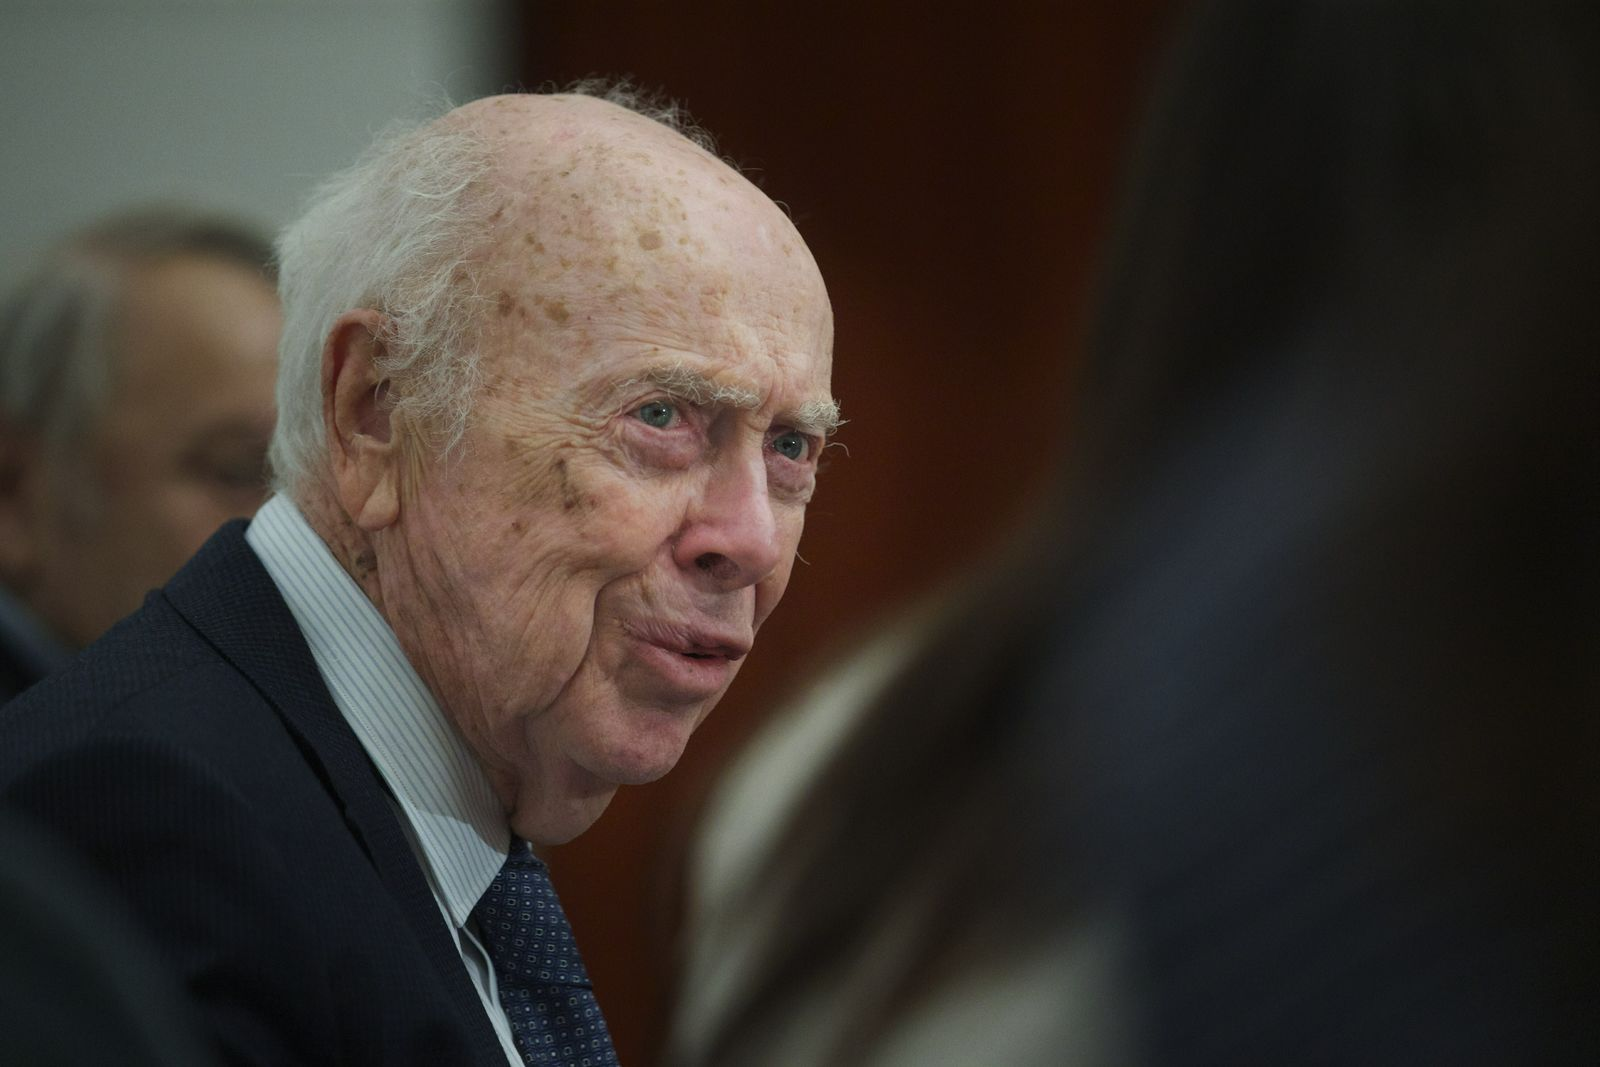 FILE - In this Wednesday, June 17, 2015 file photo, U.S. Nobel laureate biologist James Watson visits the Russian Academy of Sciences in Moscow, Russia. (AP Photo/Ivan Sekretarev)